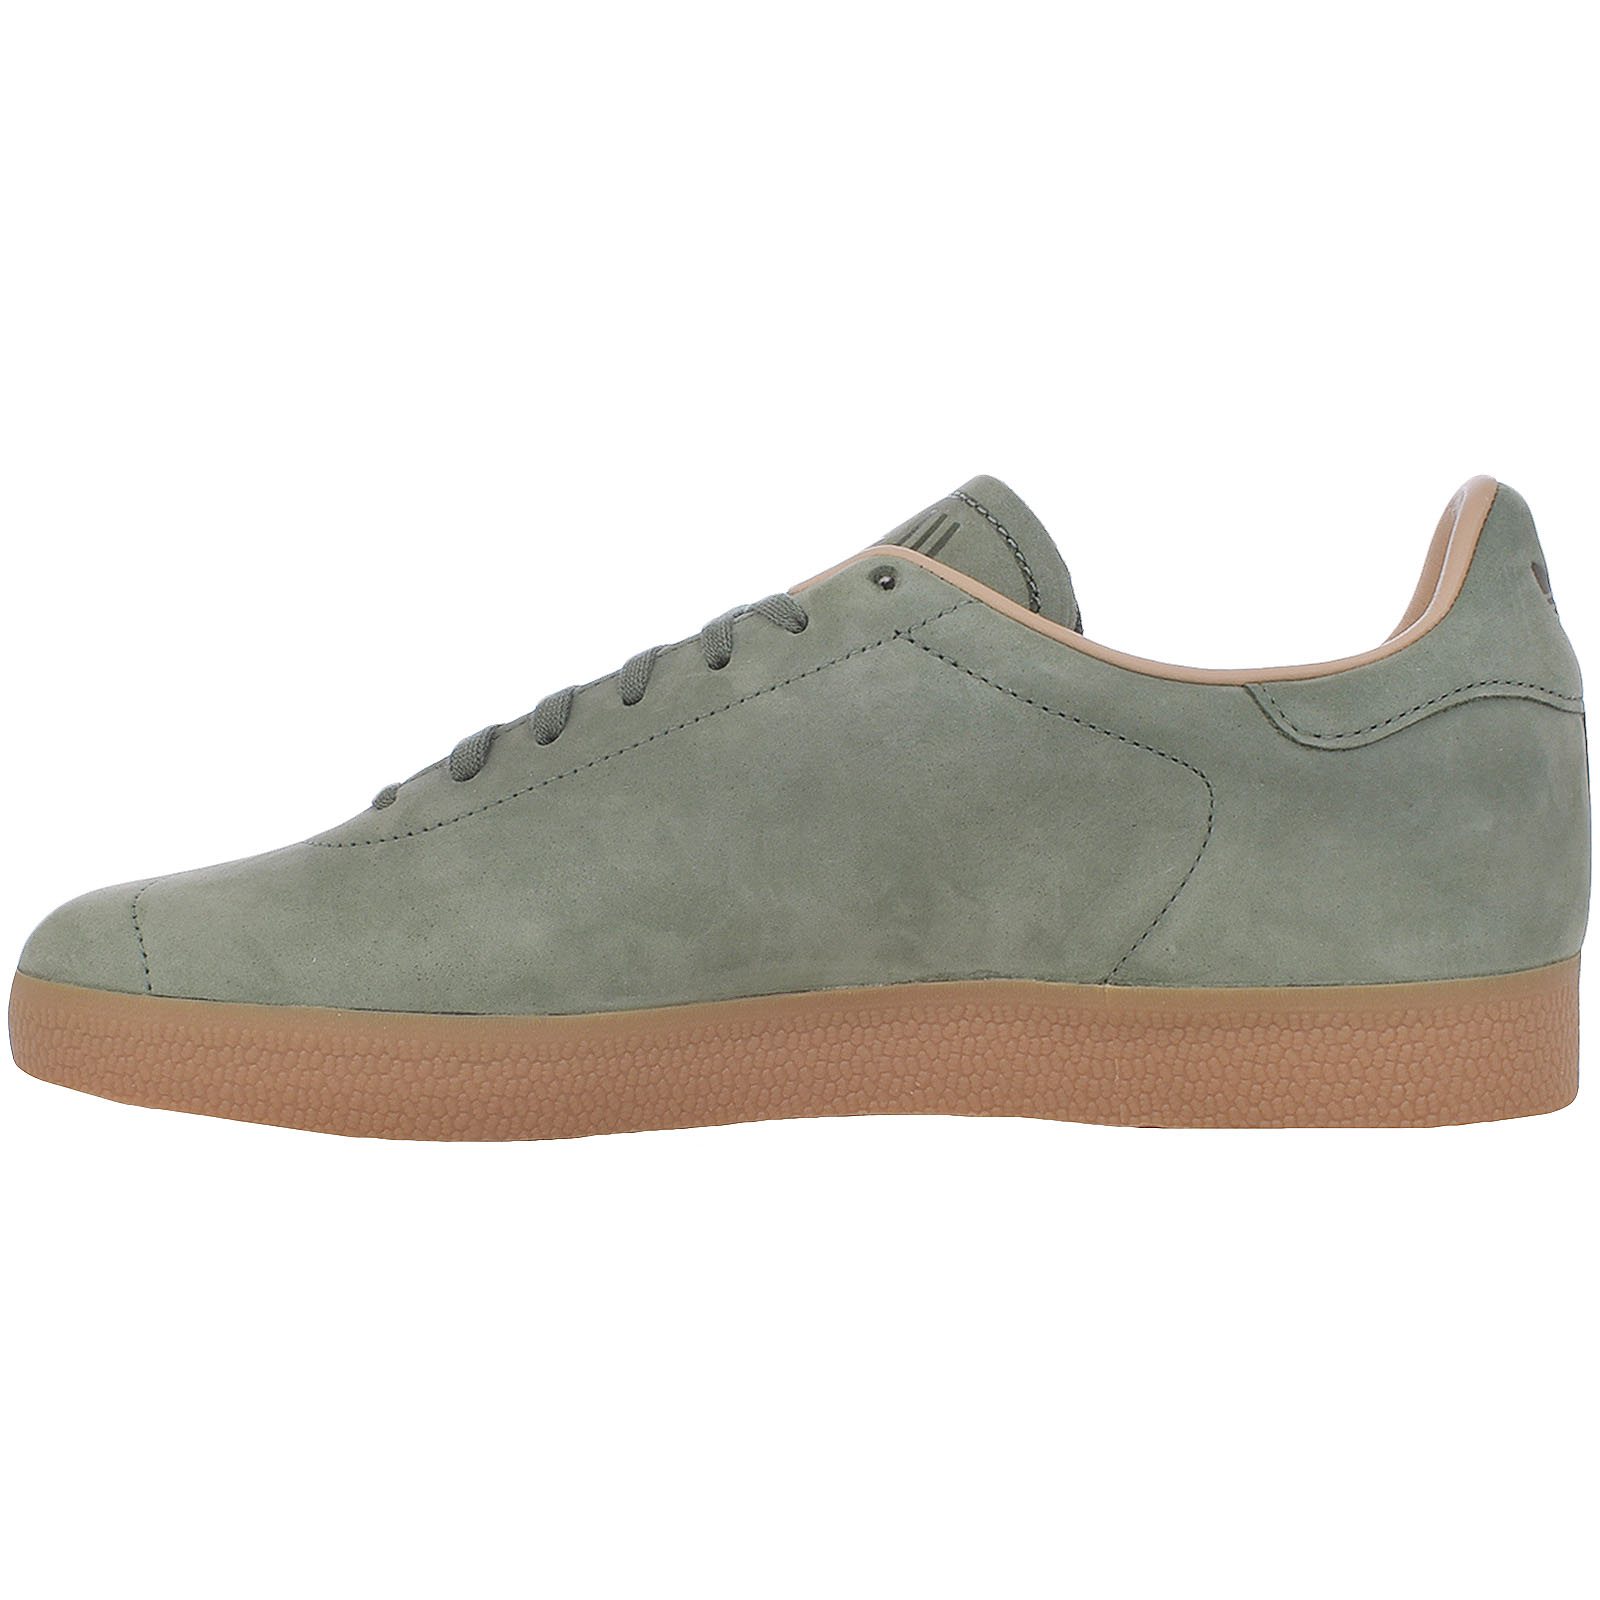 Details about adidas Orignals Mens Gazelle Decon Lace Up Casual Trainers Shoes Green Pink